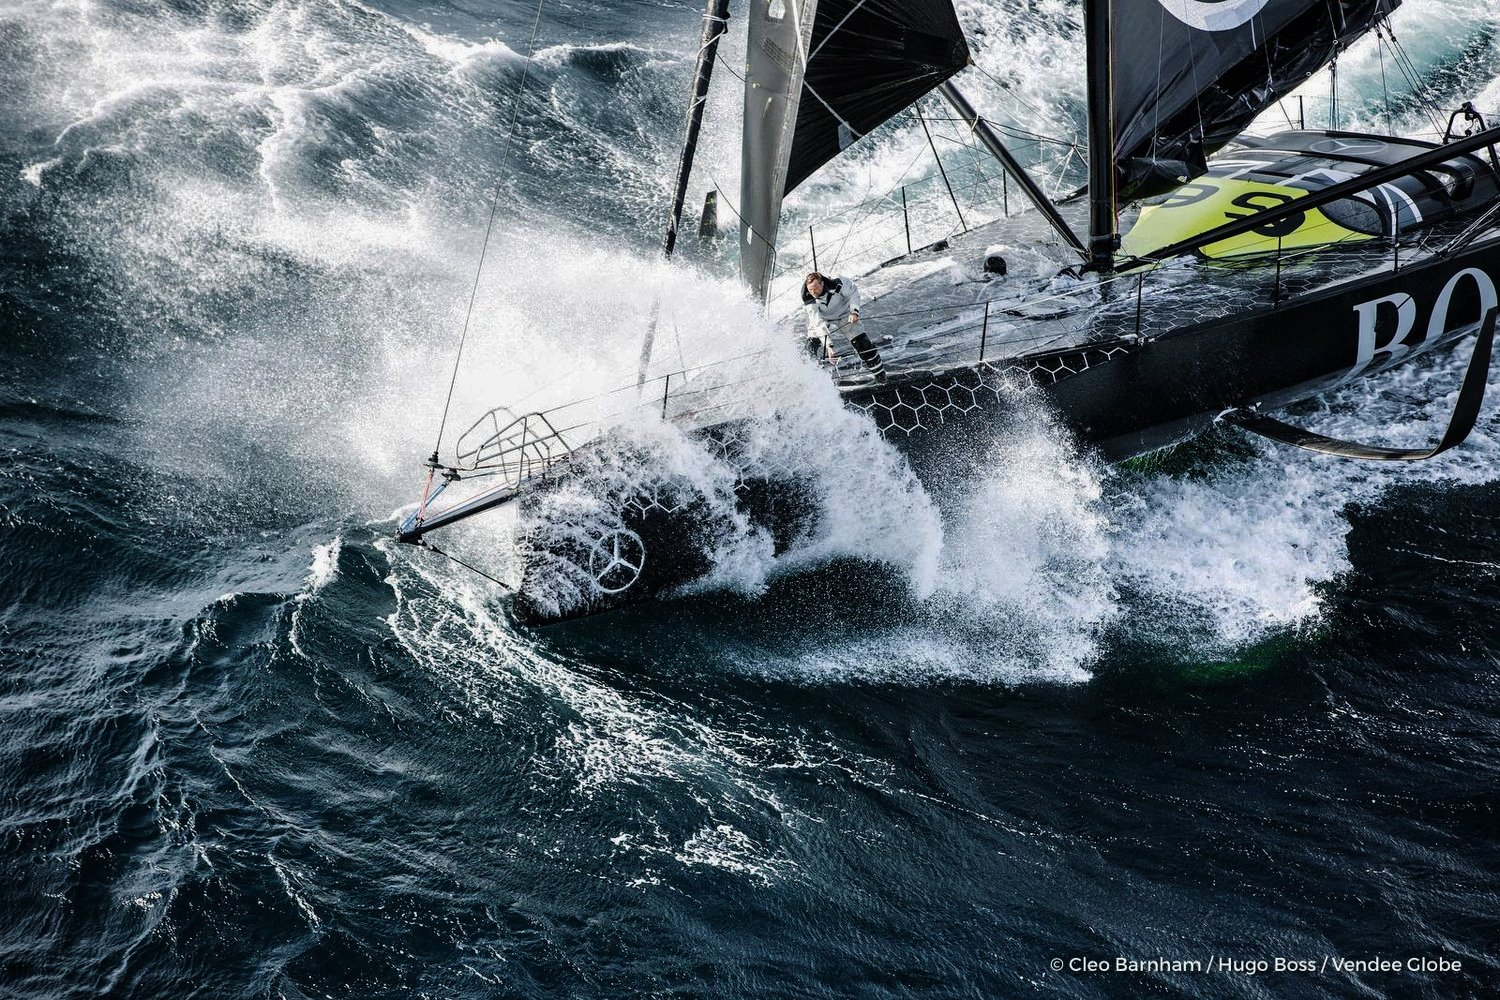 alex-thompson-in-the-hugo-boss-boat-hits-a-big-wave-during-the-vendee-globe-round-the-world-sailing-